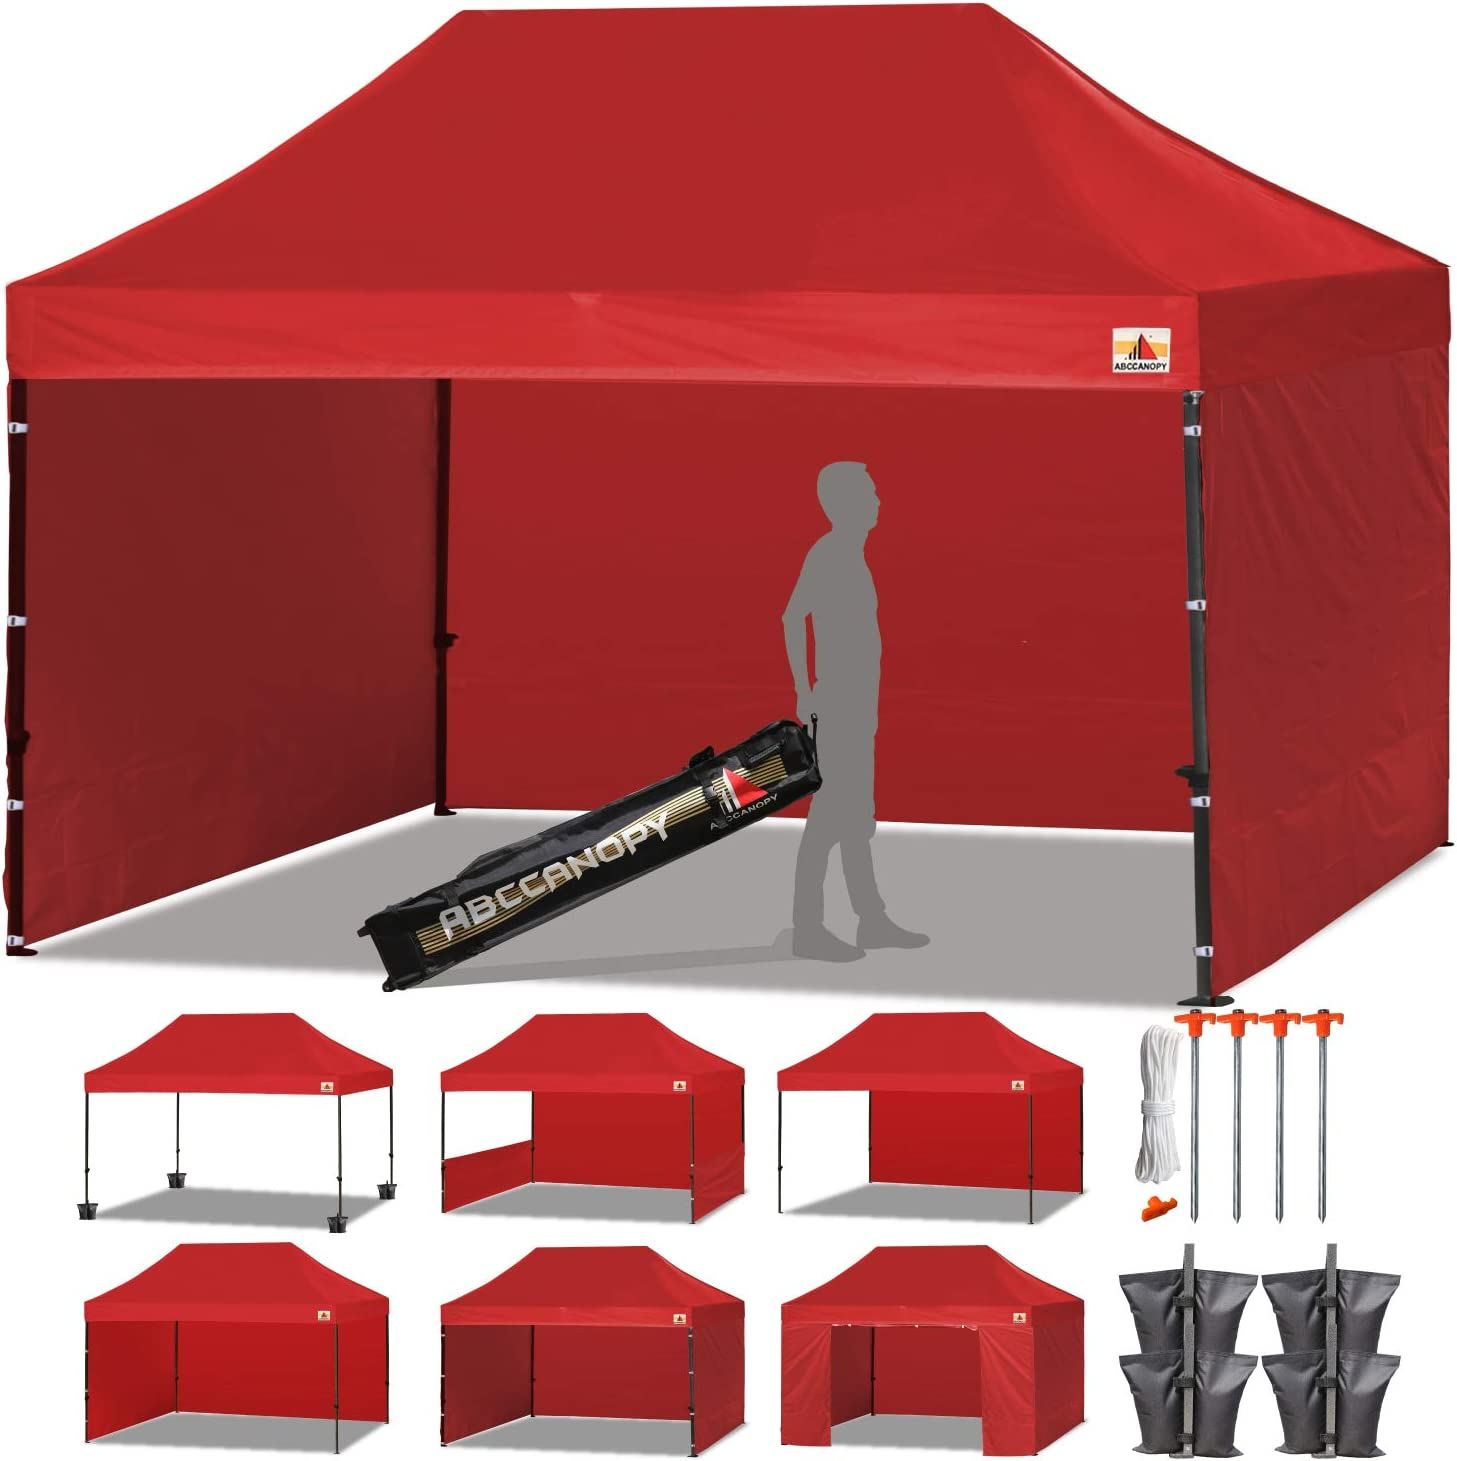 ABCCANOPY 23 Colors Deluxe 10×15 Pop up Canopy Outdoor Party Tent Commercial Gazebo with Enclosure Walls and Wheeled Carry Bag Bonus 4 Weight Bags and 2 Half Walls Red